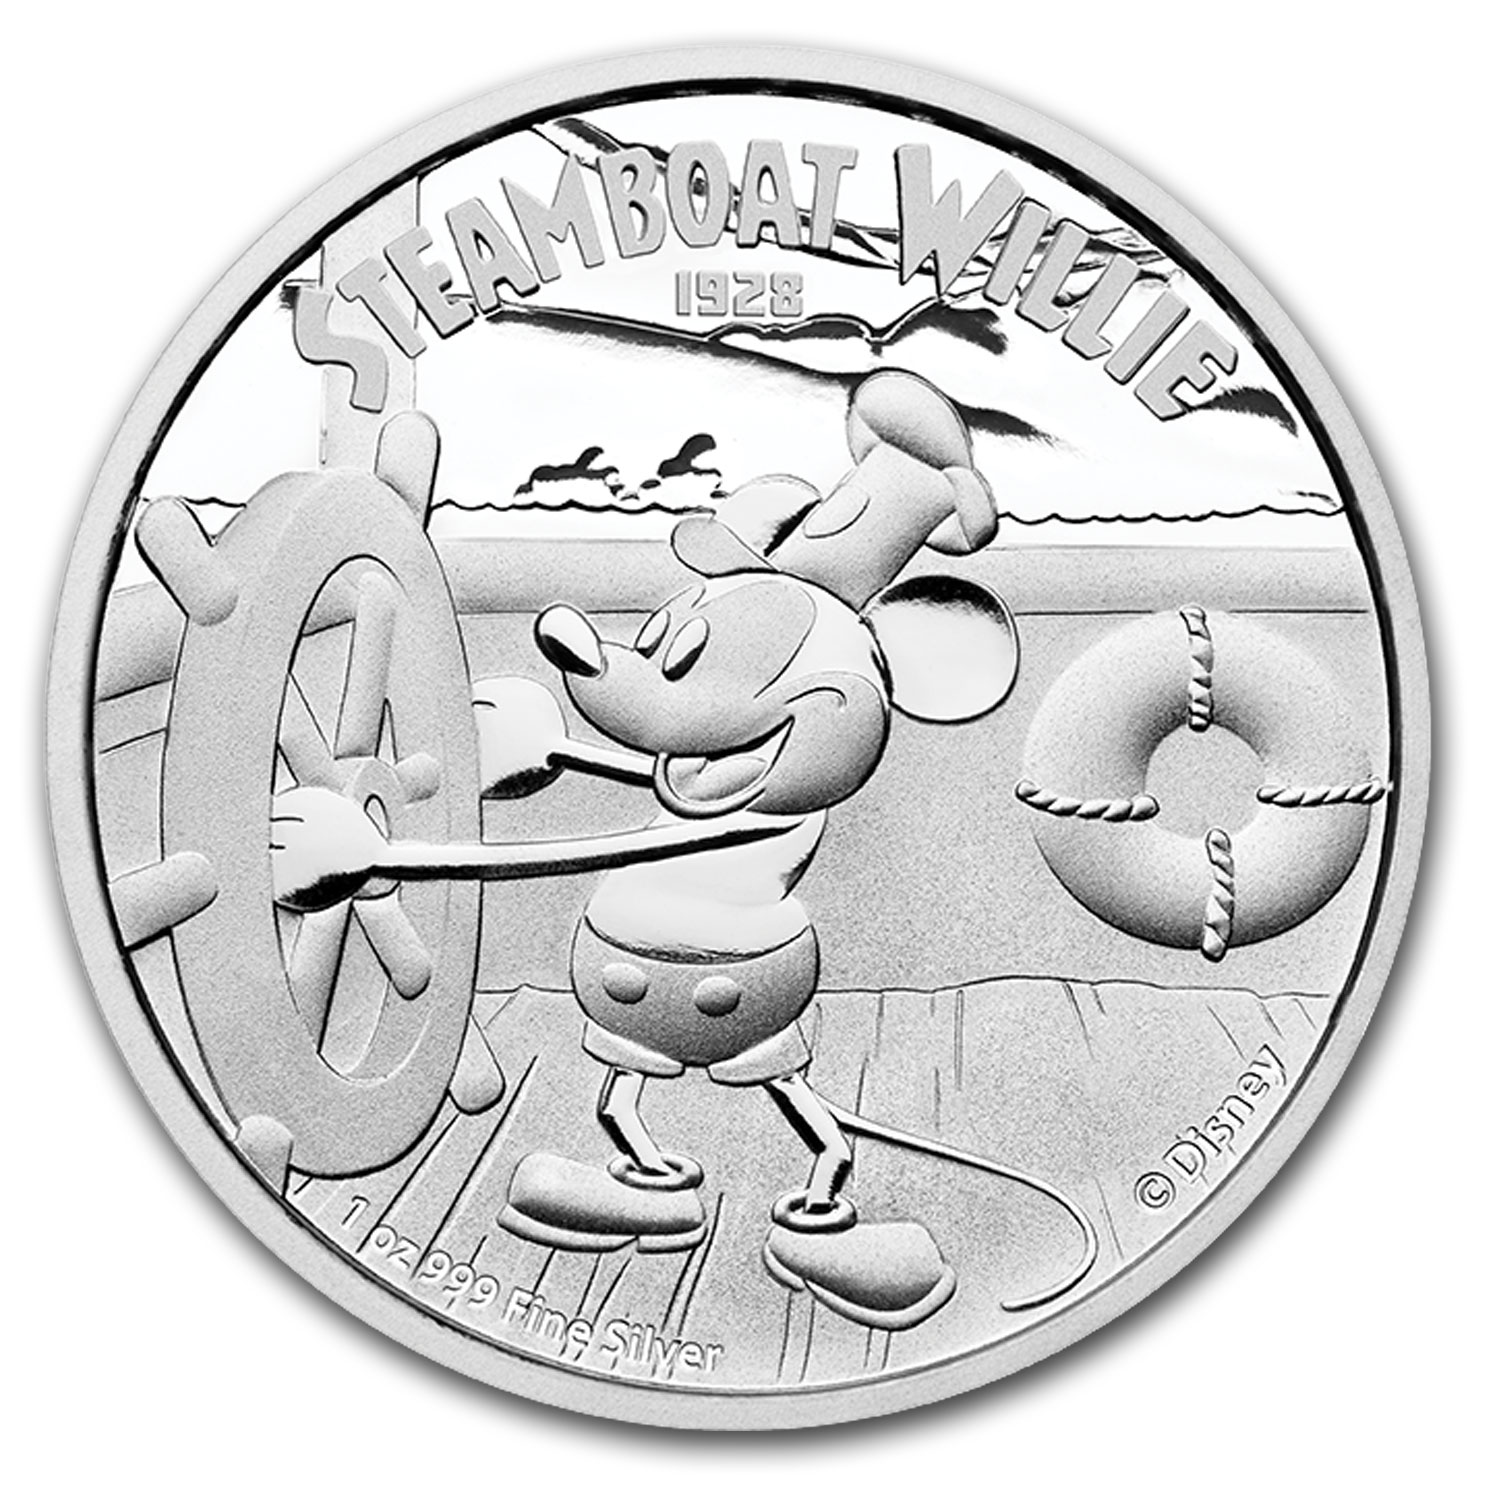 2014 1 oz Silver $2 Niue Disney Steamboat Willie